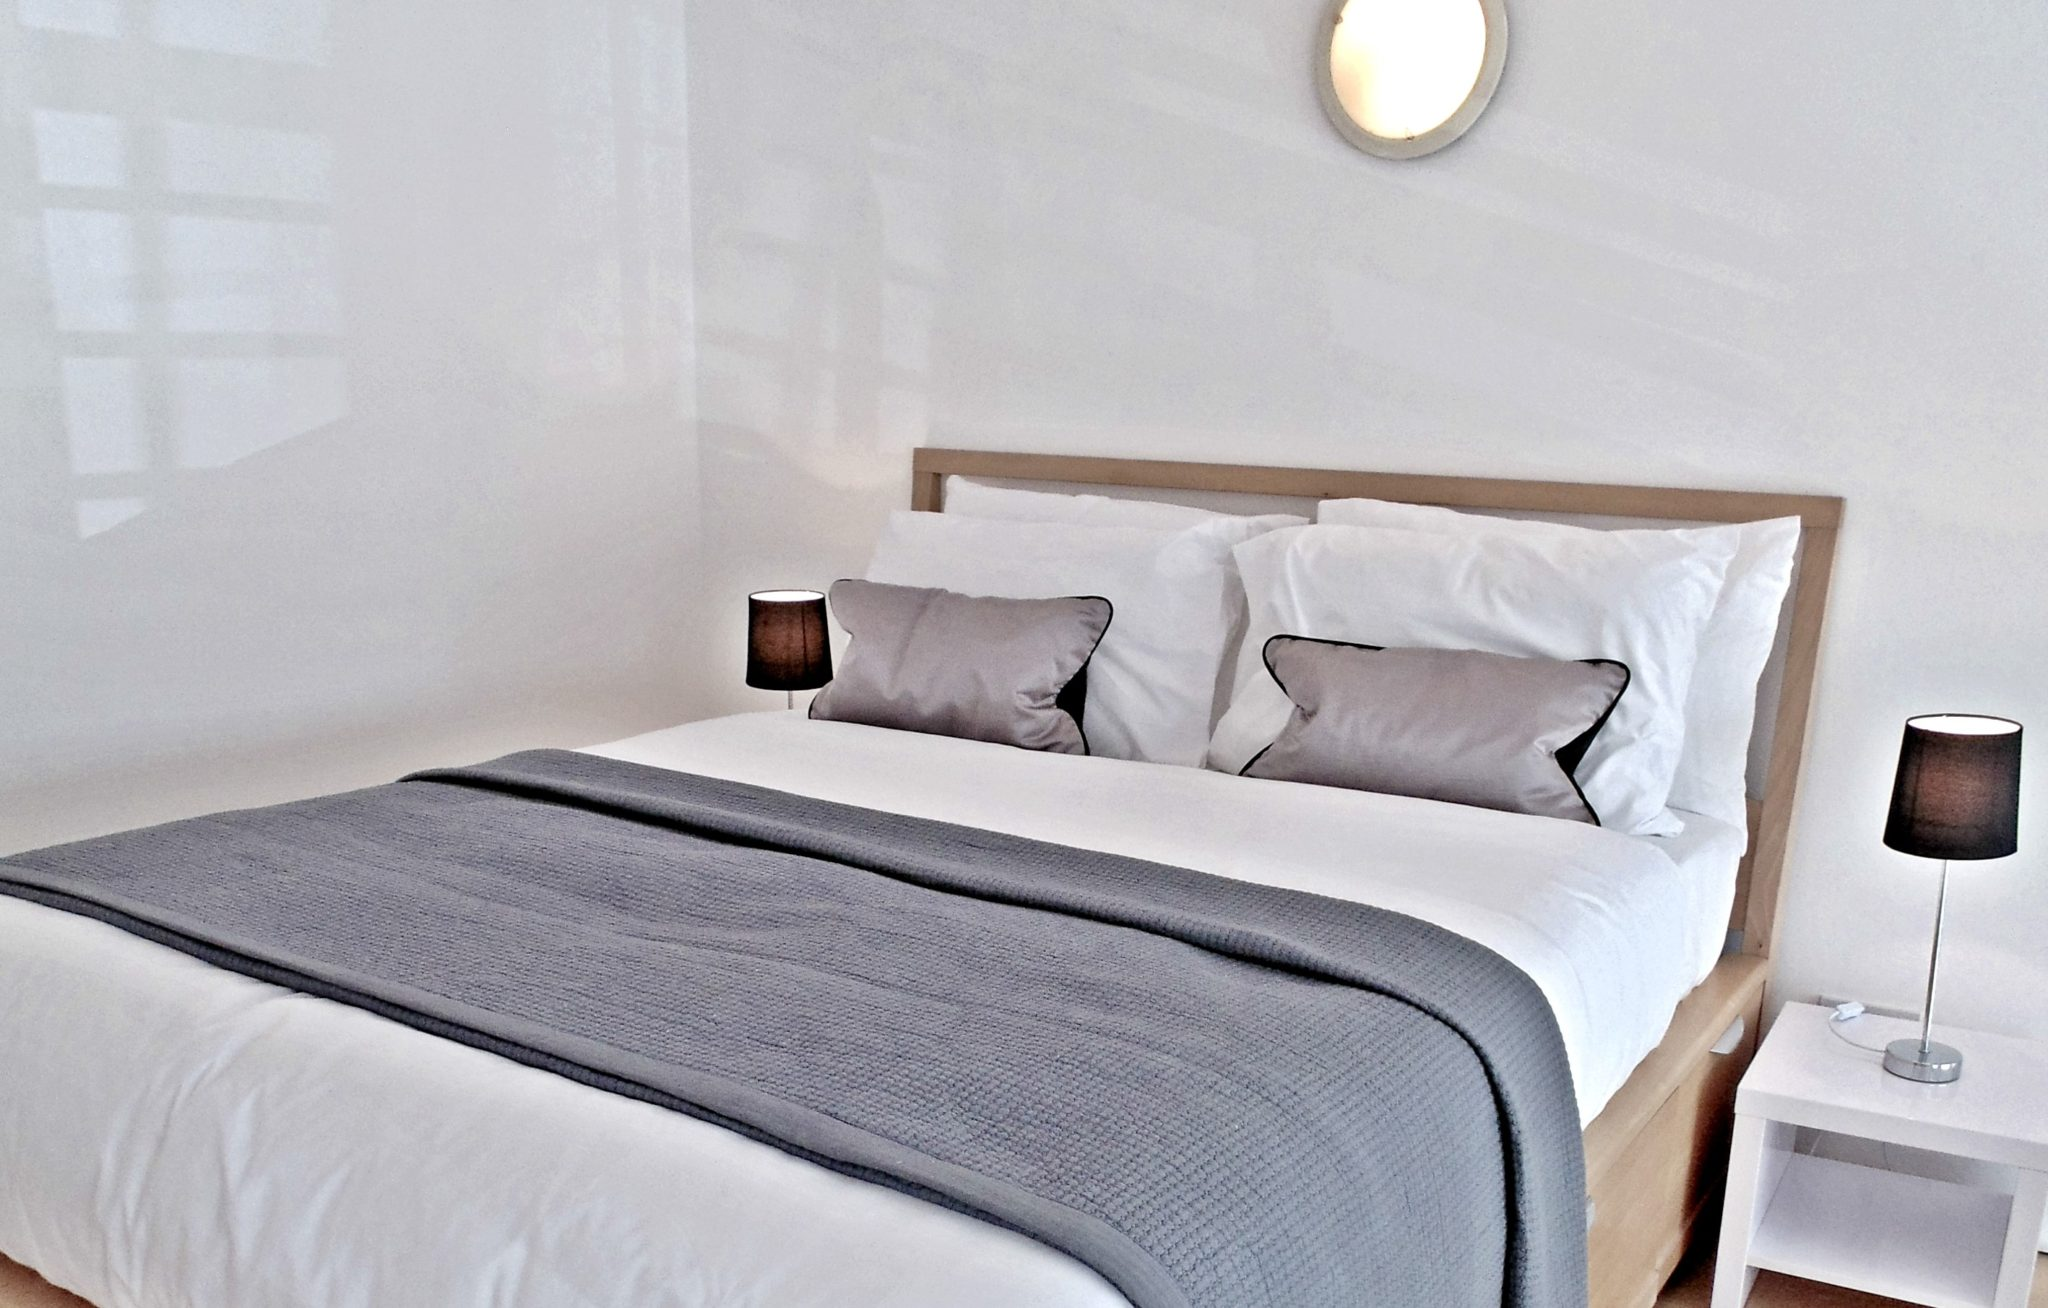 North-London-Accommodation---York-Way-Apartments-|-Cheap-Hotel-Alternative-Accommodation-London---Serviced-Apartments-King's-Cross---free-Wifi-|-Urban-Stay